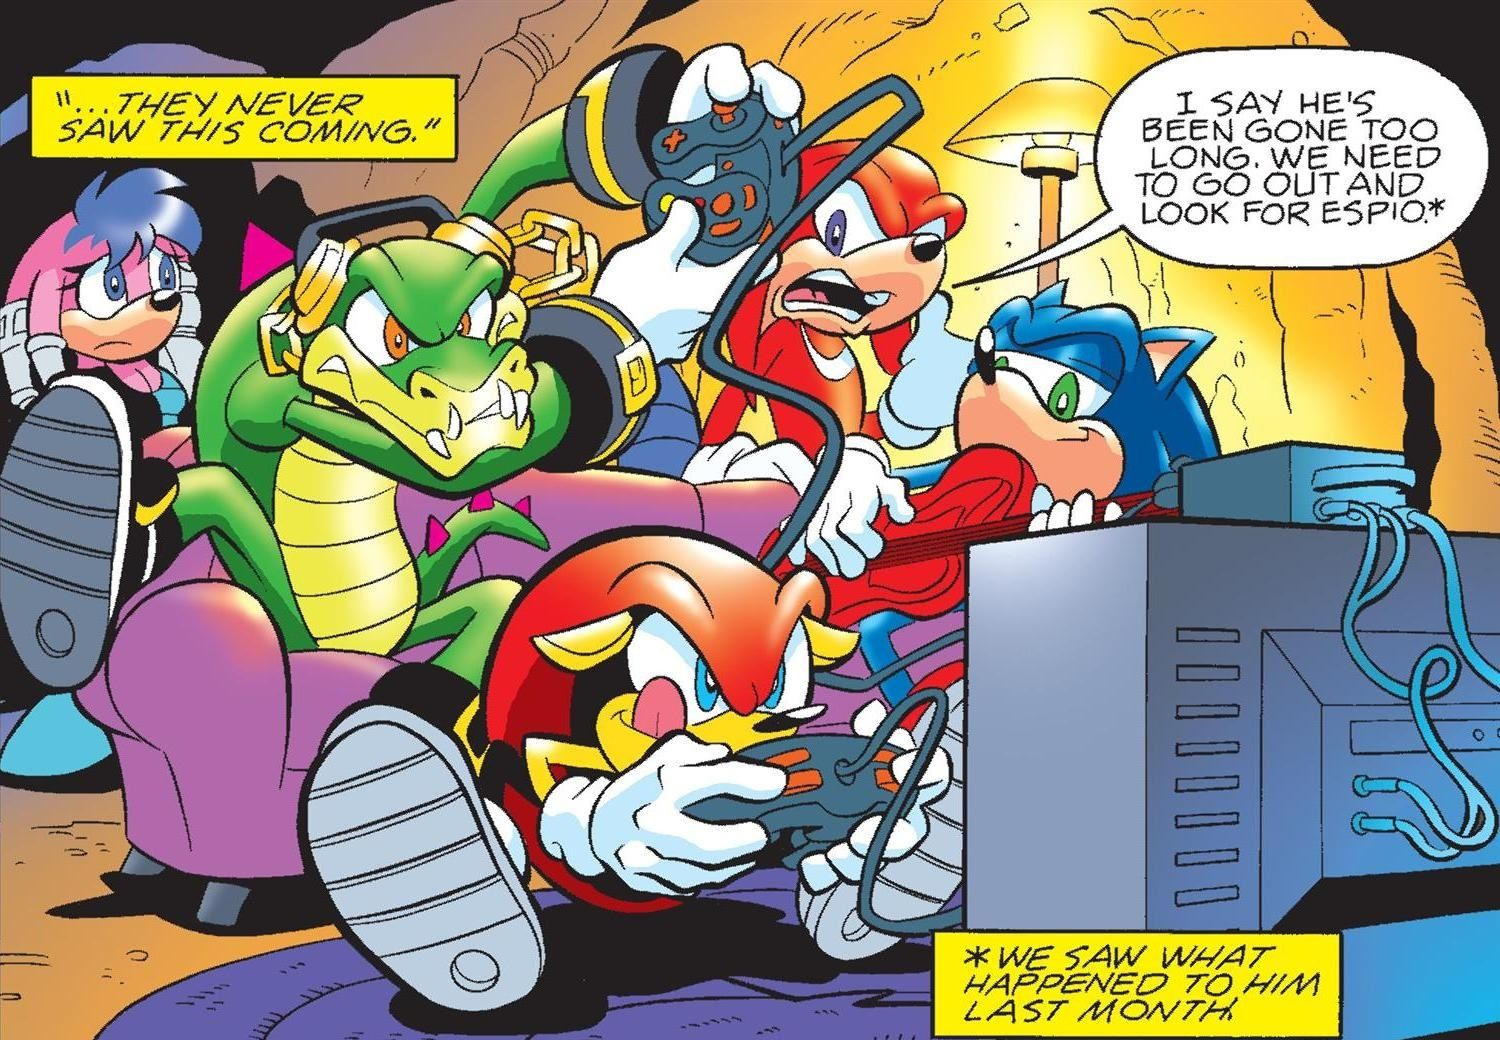 Oh no... and of course Sonic's just sitting there carelessly strumming the guitar XD I play games like Mighty XD lol Mighty is awesome!